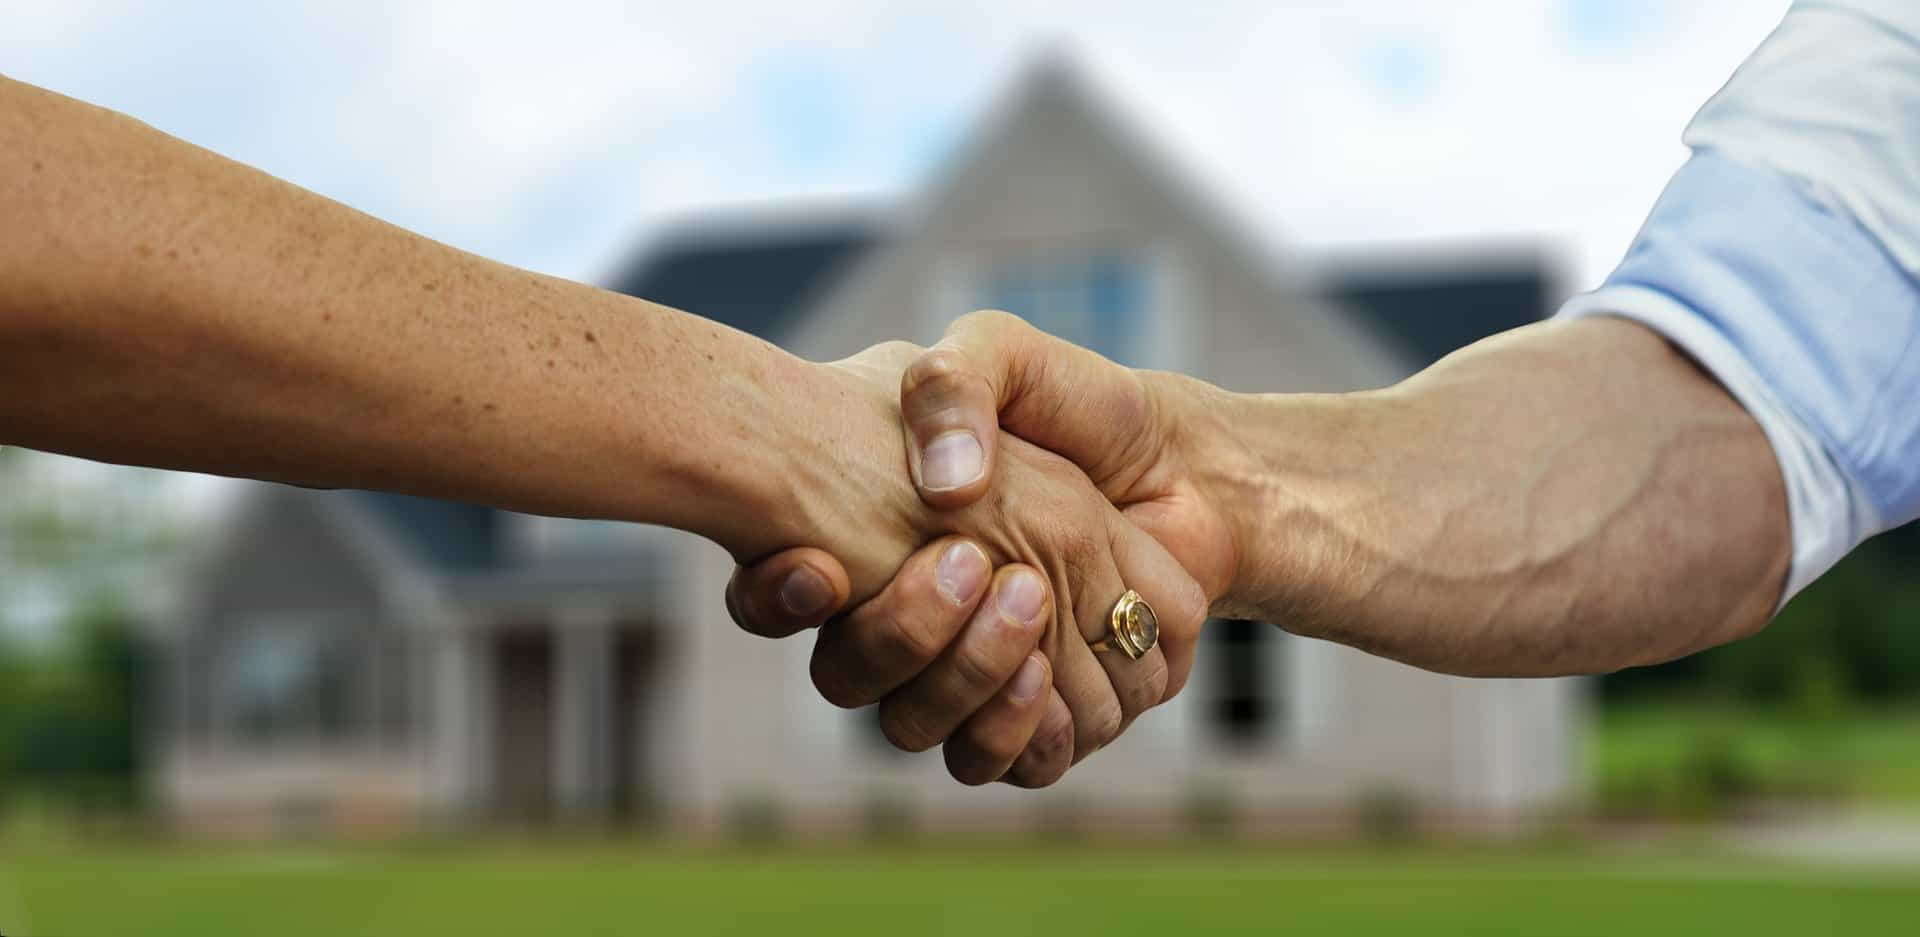 Lender is the deed of trust